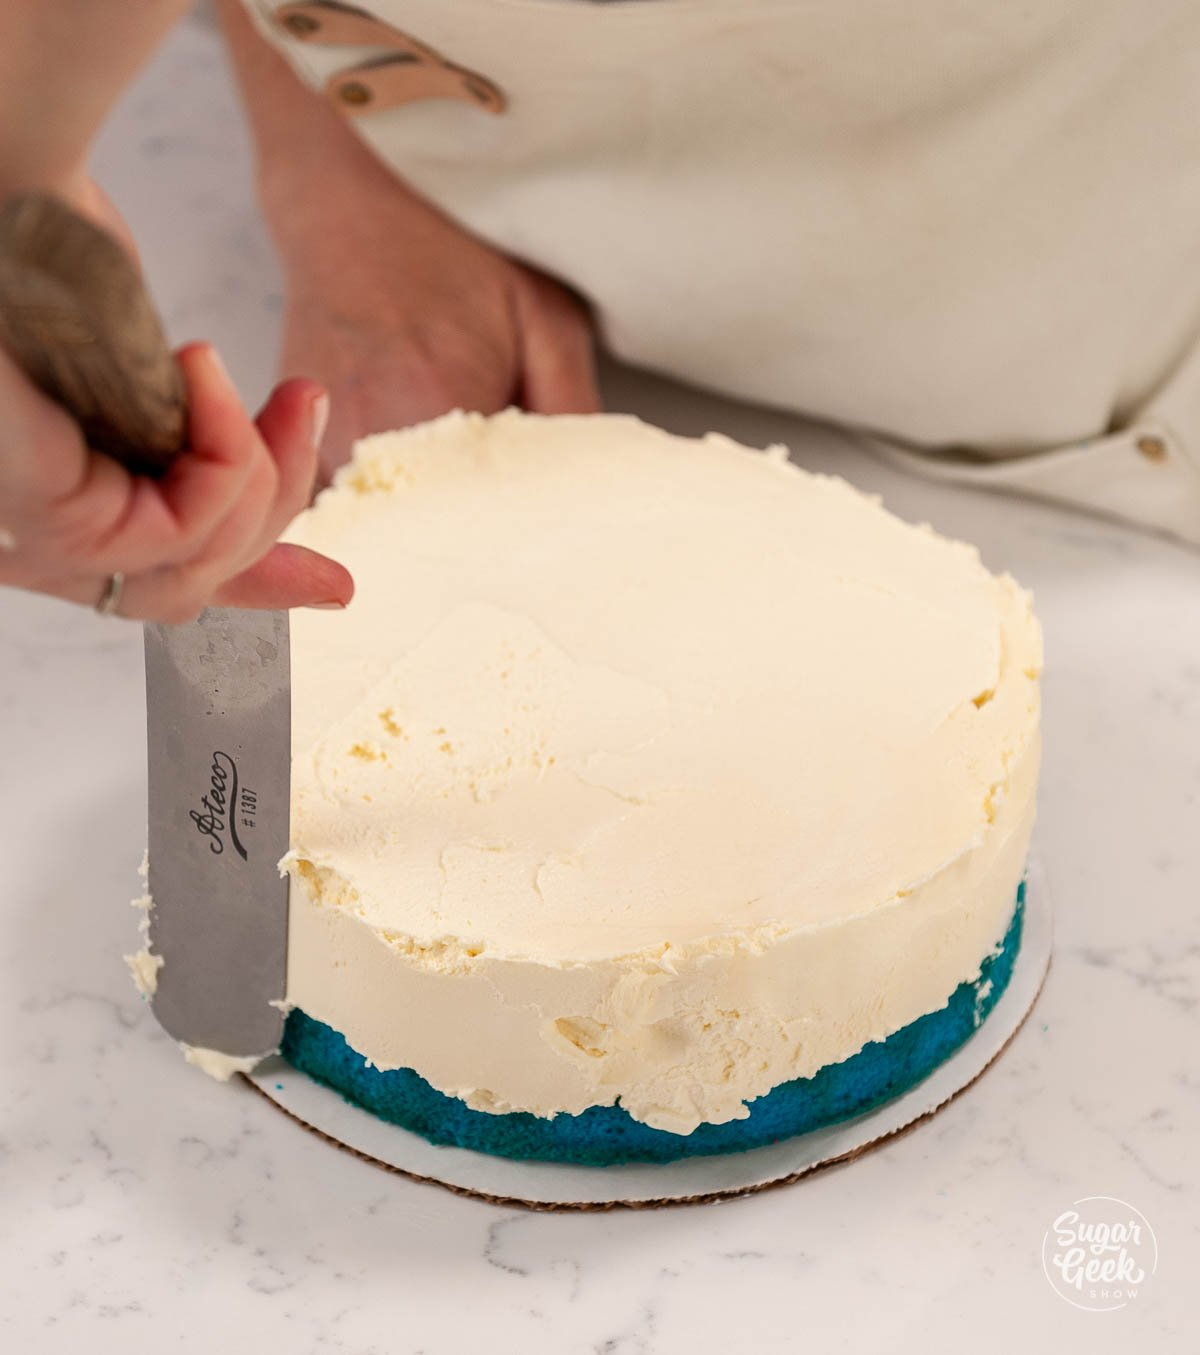 ice cream layer on top of blue cake layer